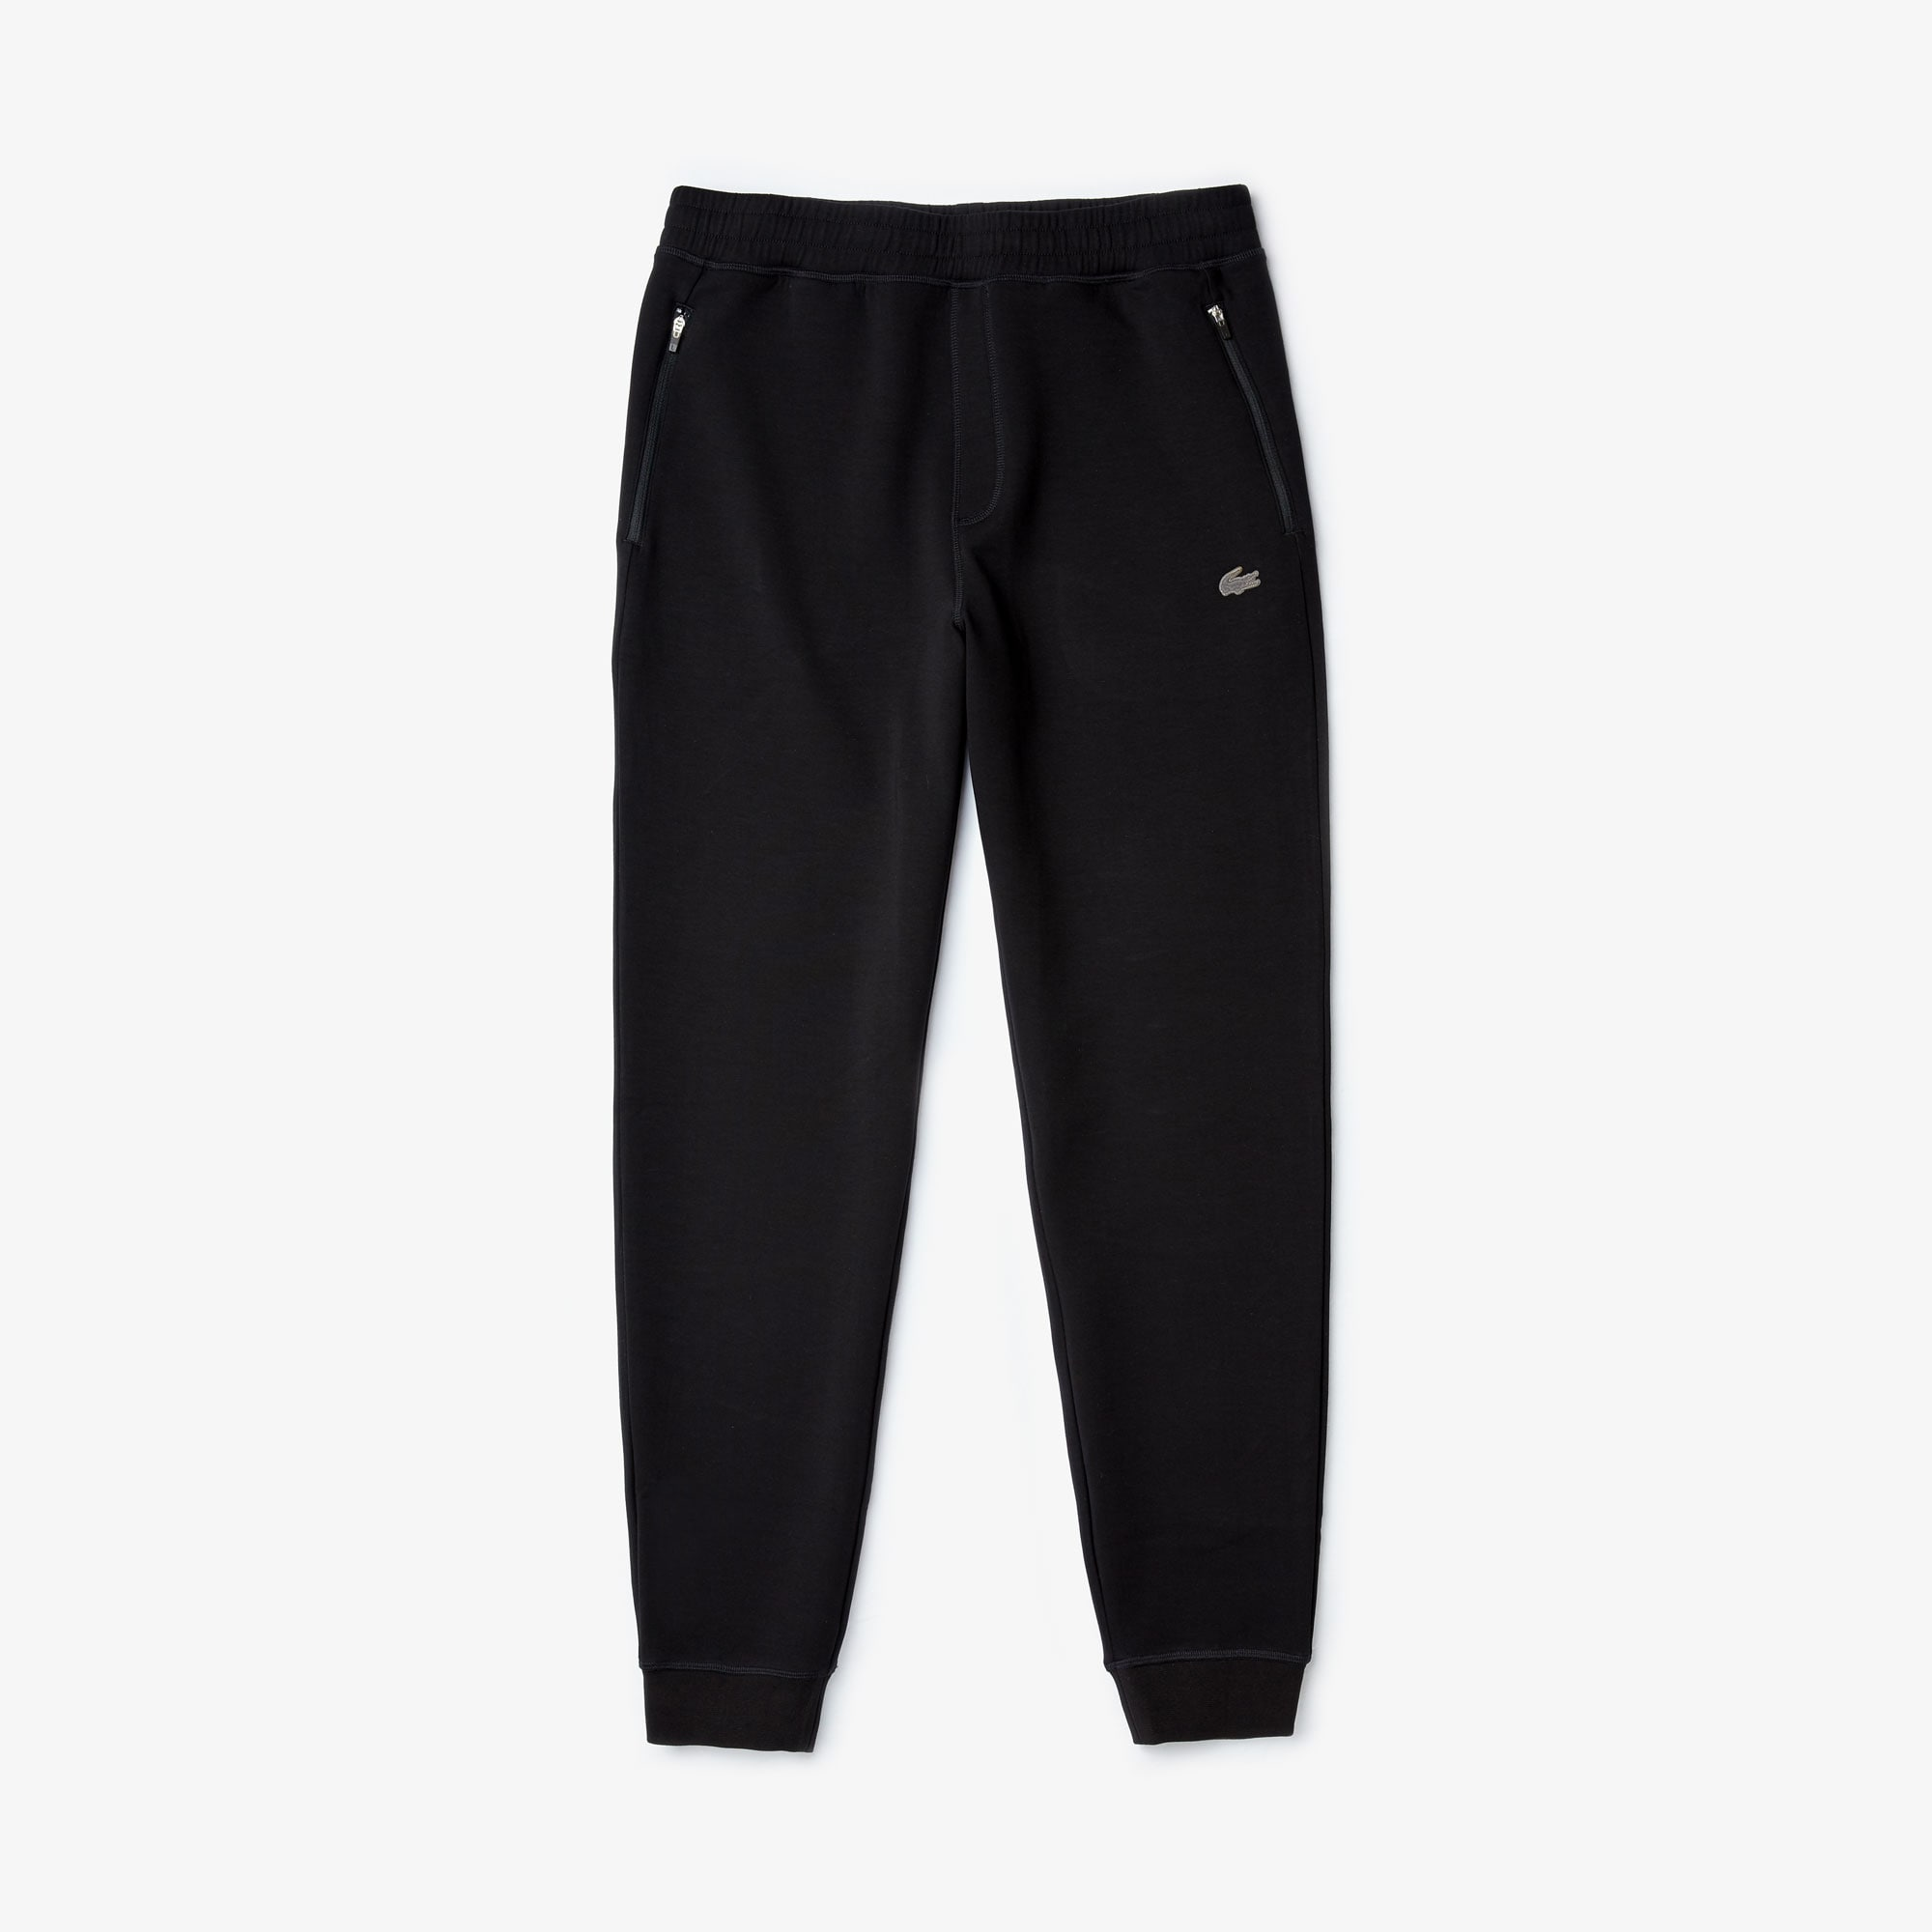 Men's Motion Stretch Track Pants